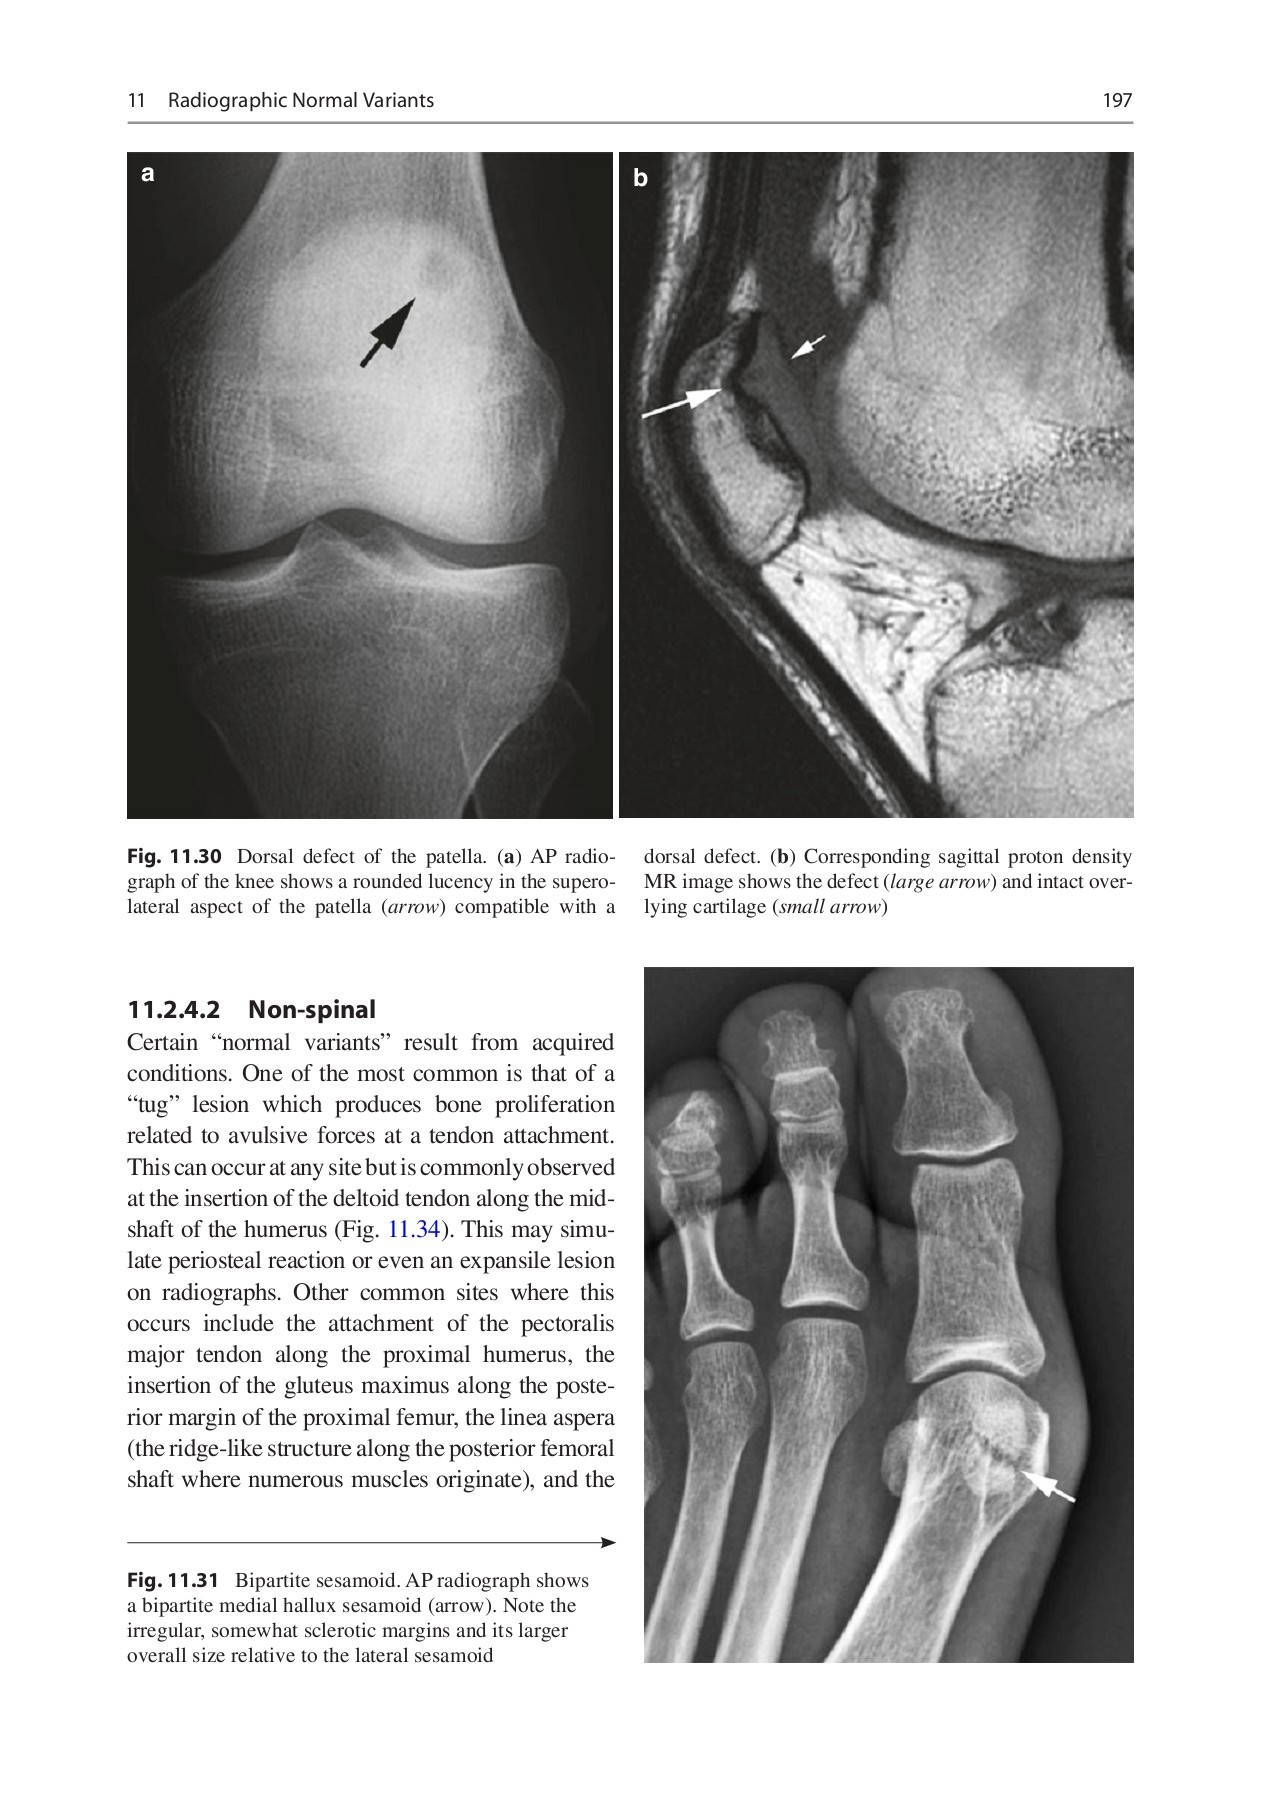 pitfalls in musculoskeletal radiology pages 201 250 text version fliphtml5 [ 1261 x 1800 Pixel ]